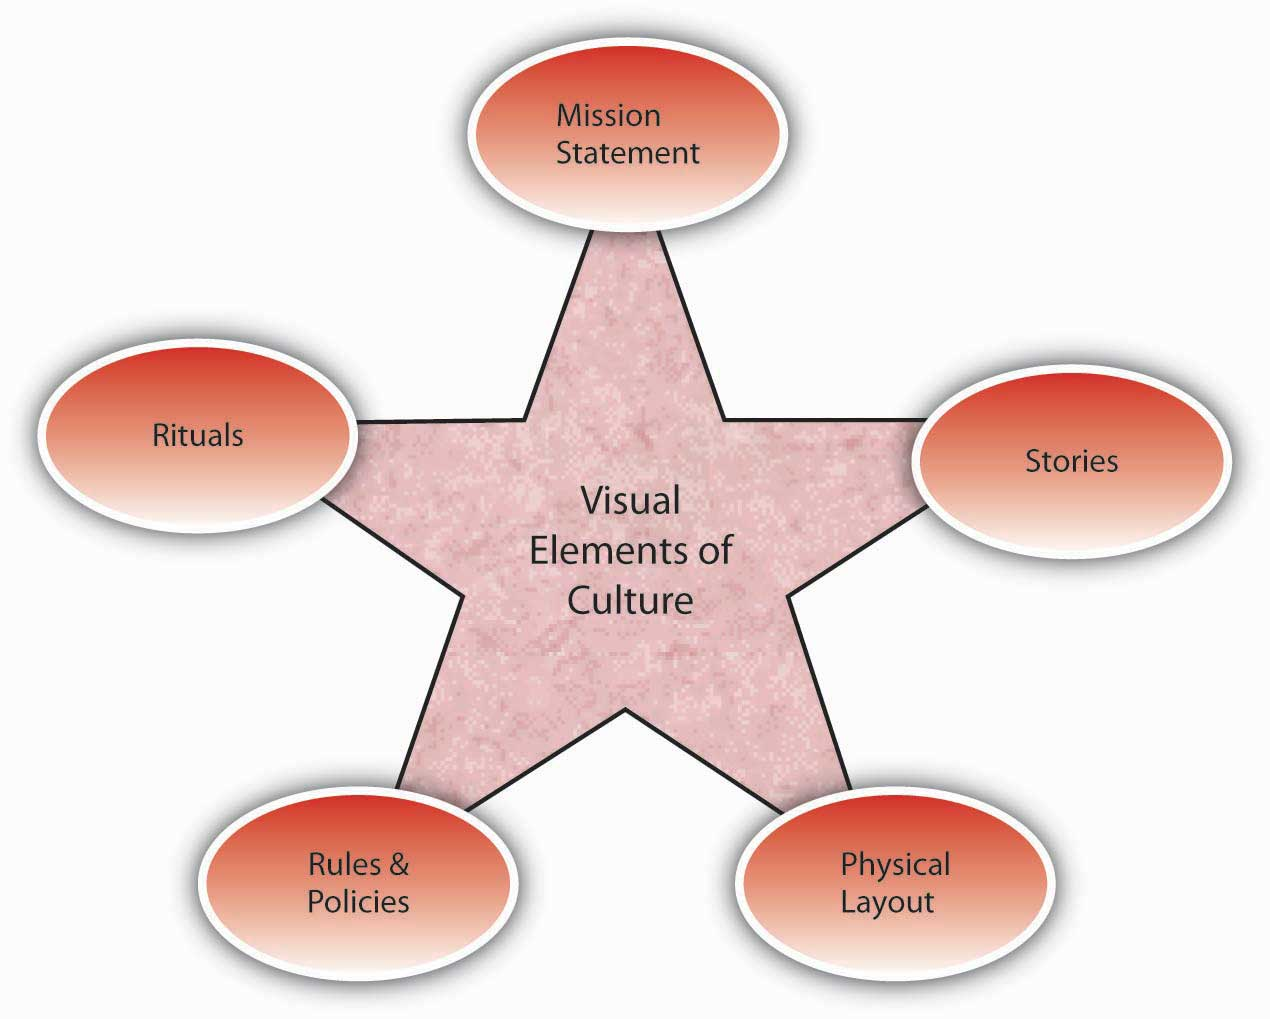 Visual Elements of Culture